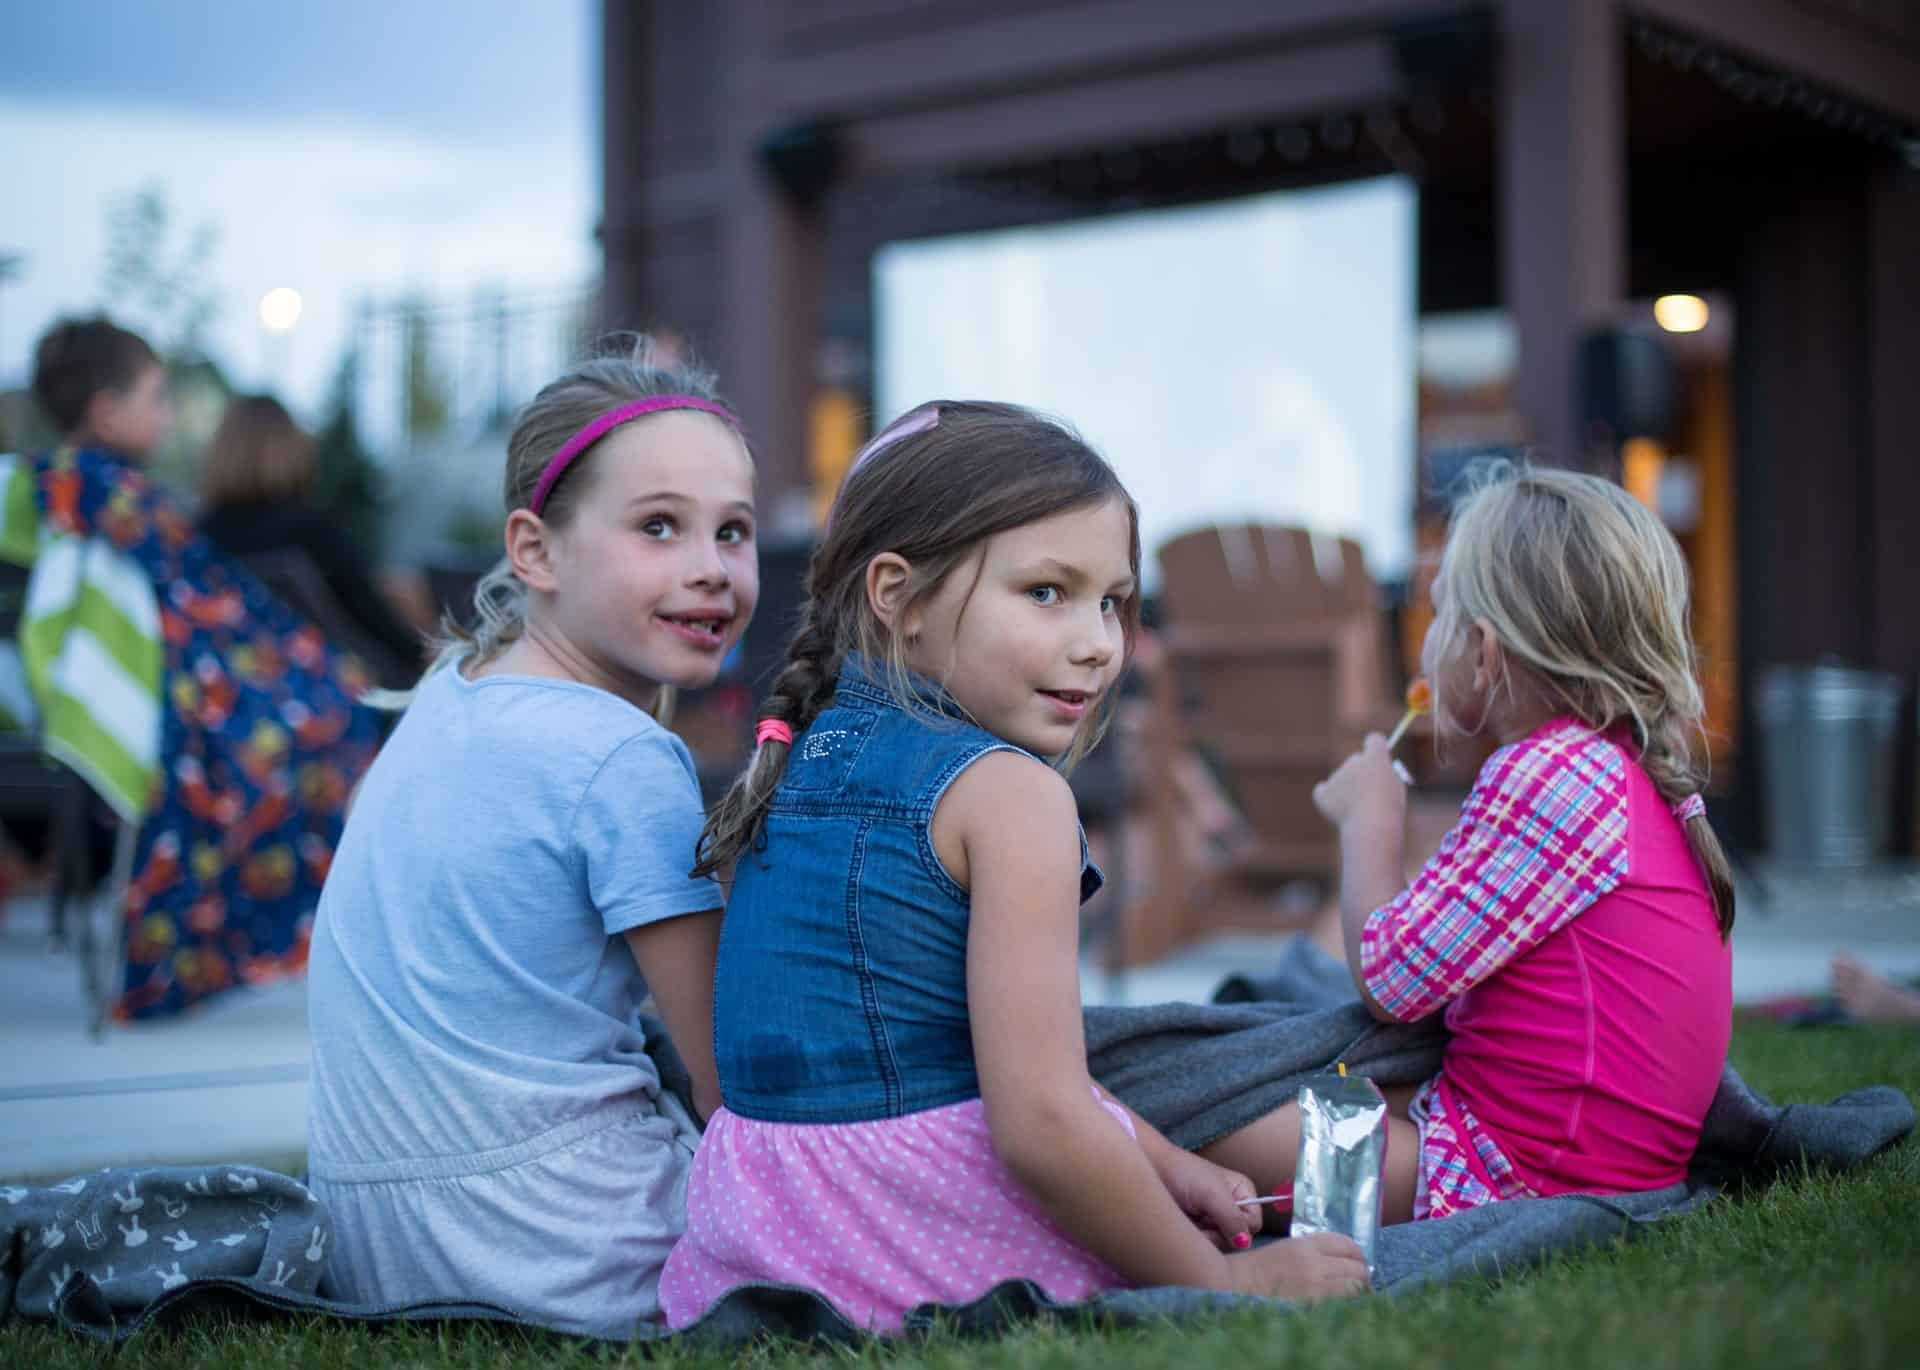 Outdoor Movies at the Park